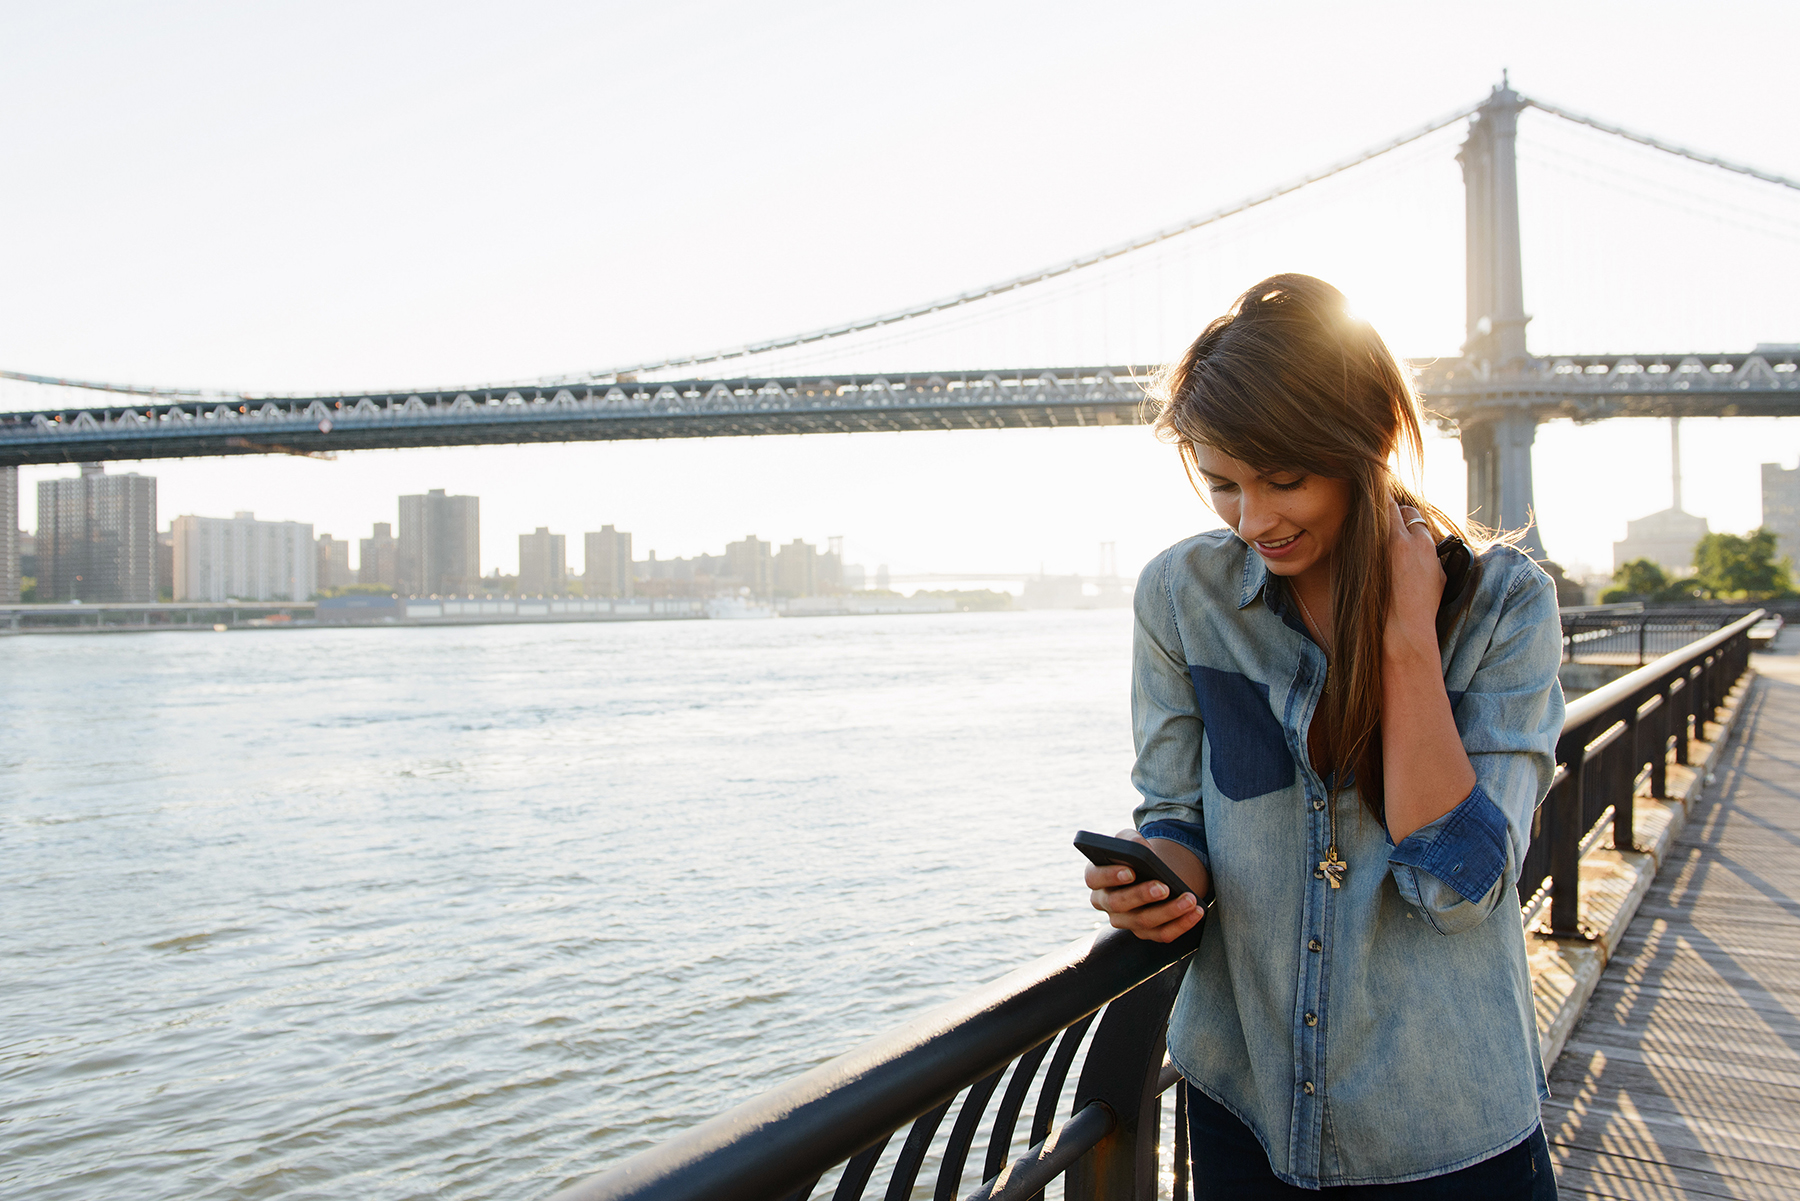 The Habit That Puts You at Risk for Smartphone Separation Anxiety—and How to Avoid It